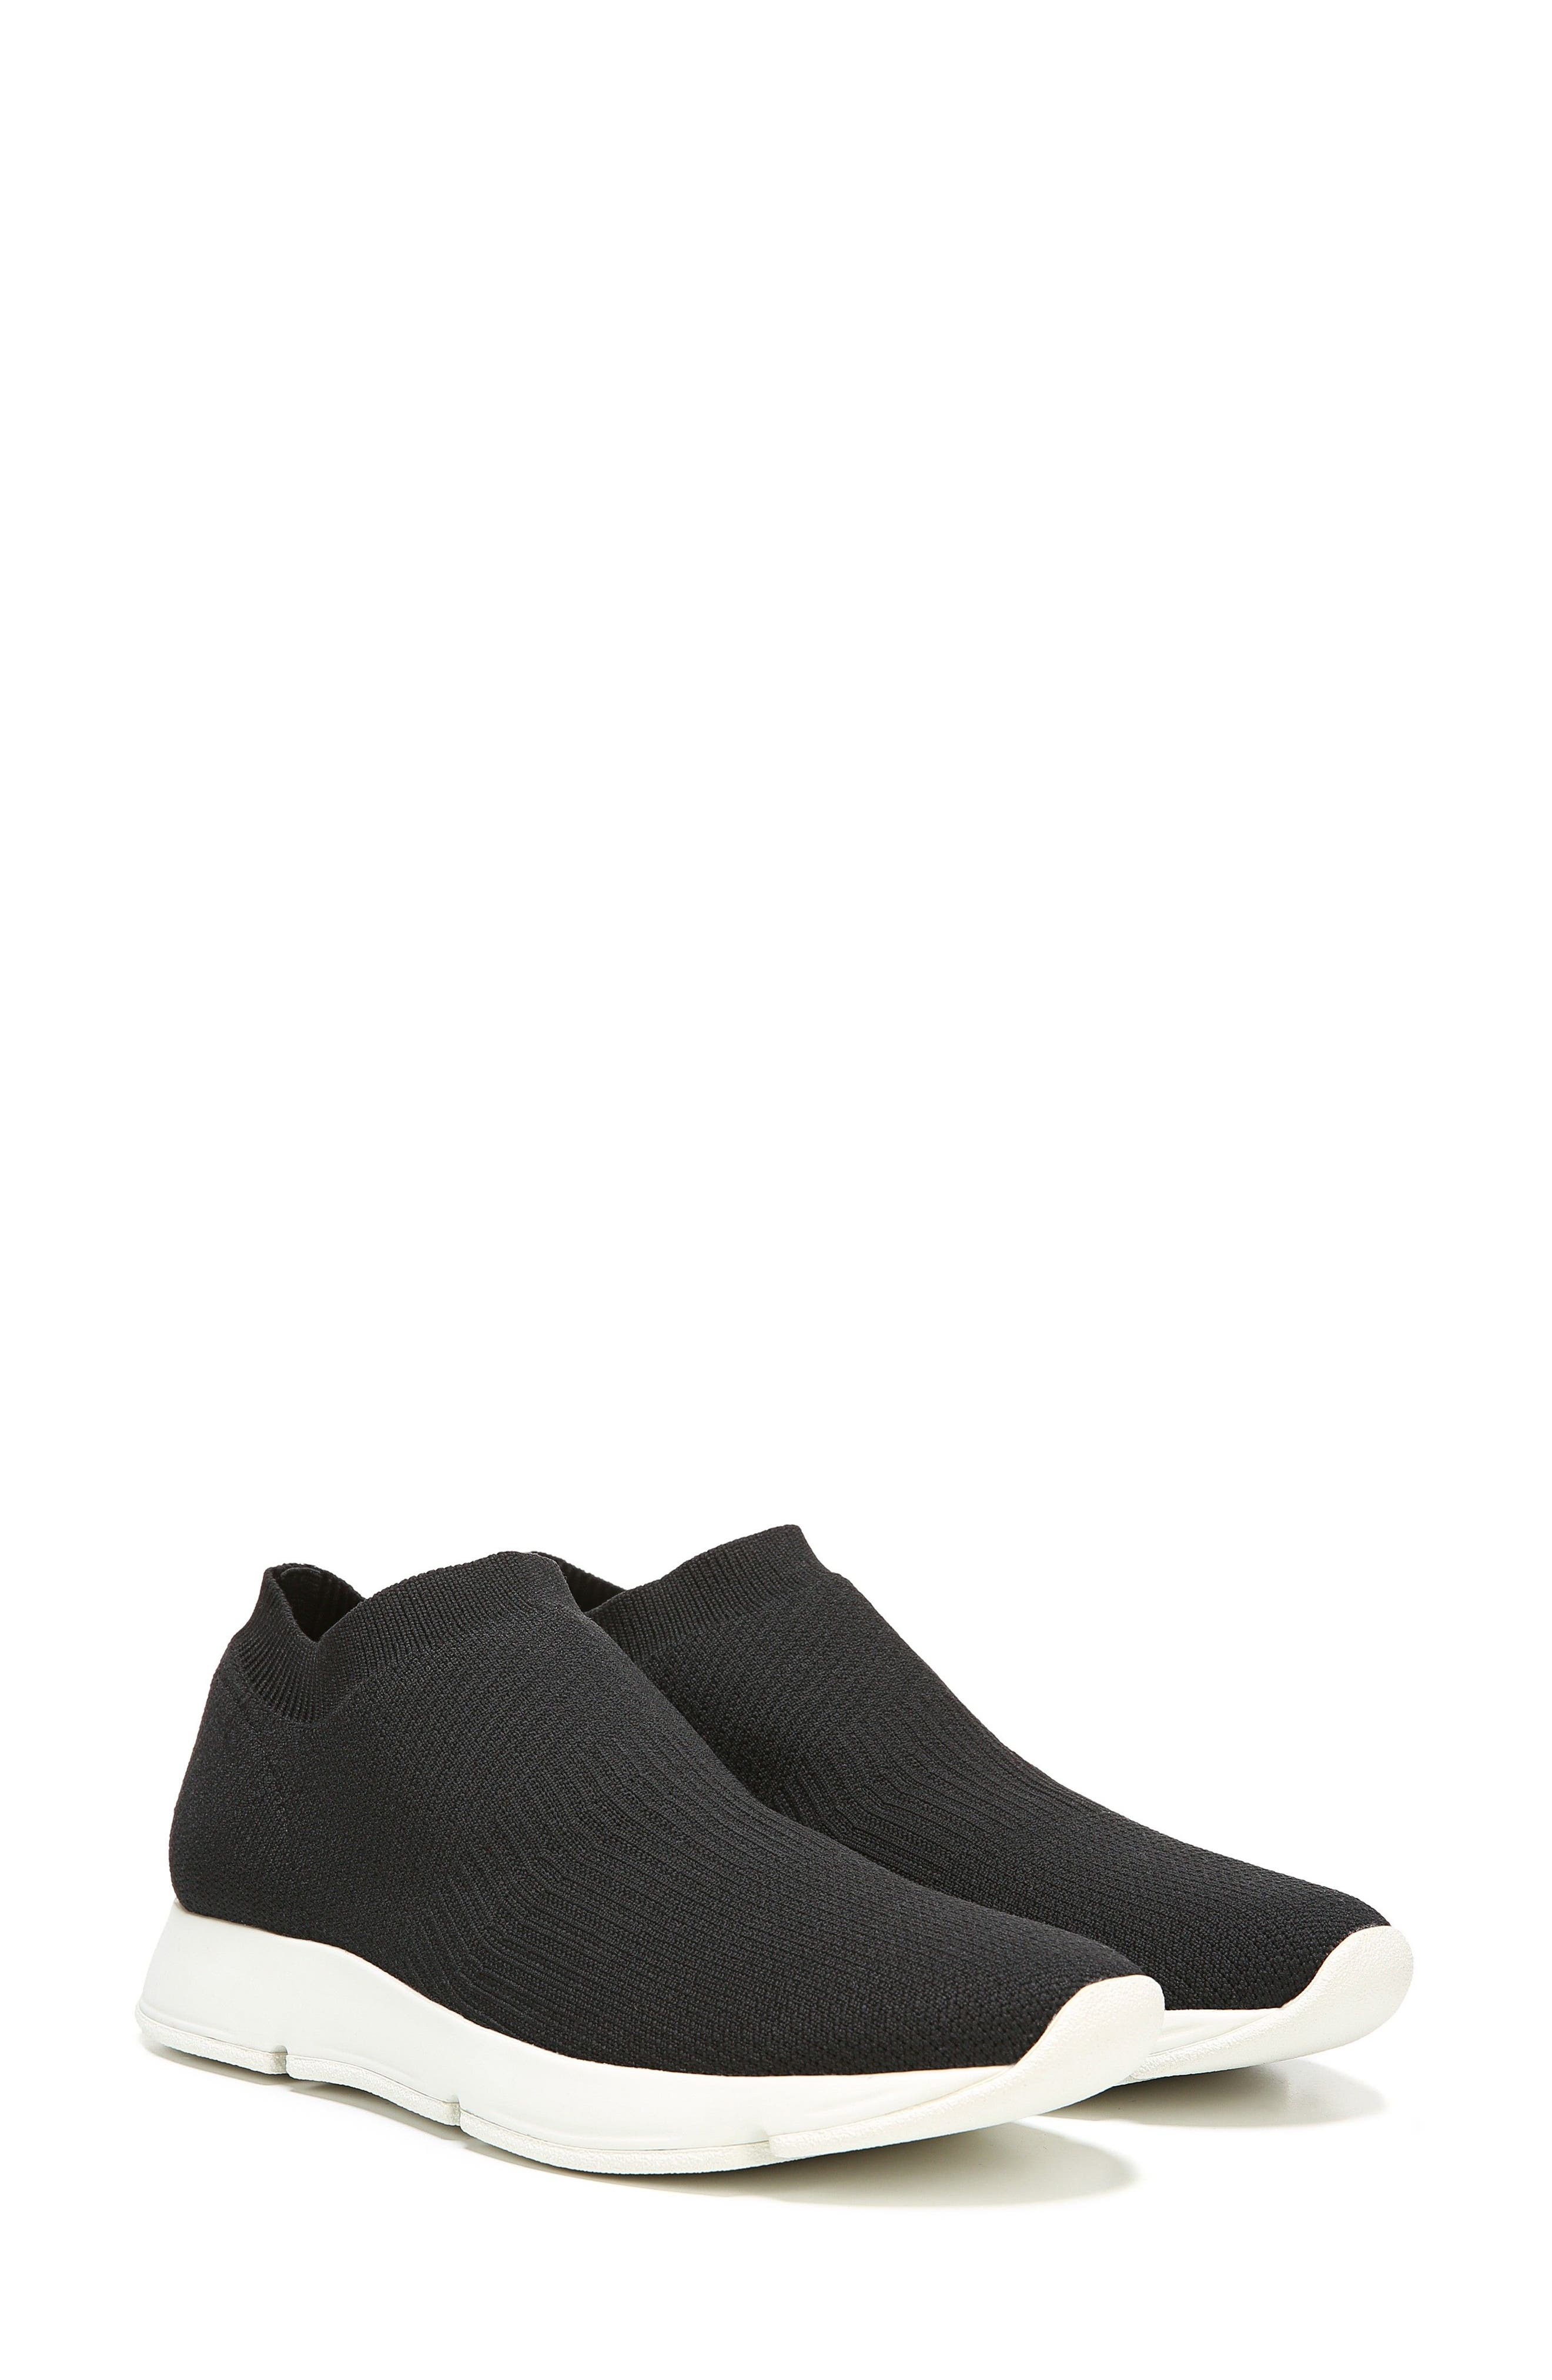 Theroux Slip-On Knit Sneaker,                             Alternate thumbnail 22, color,